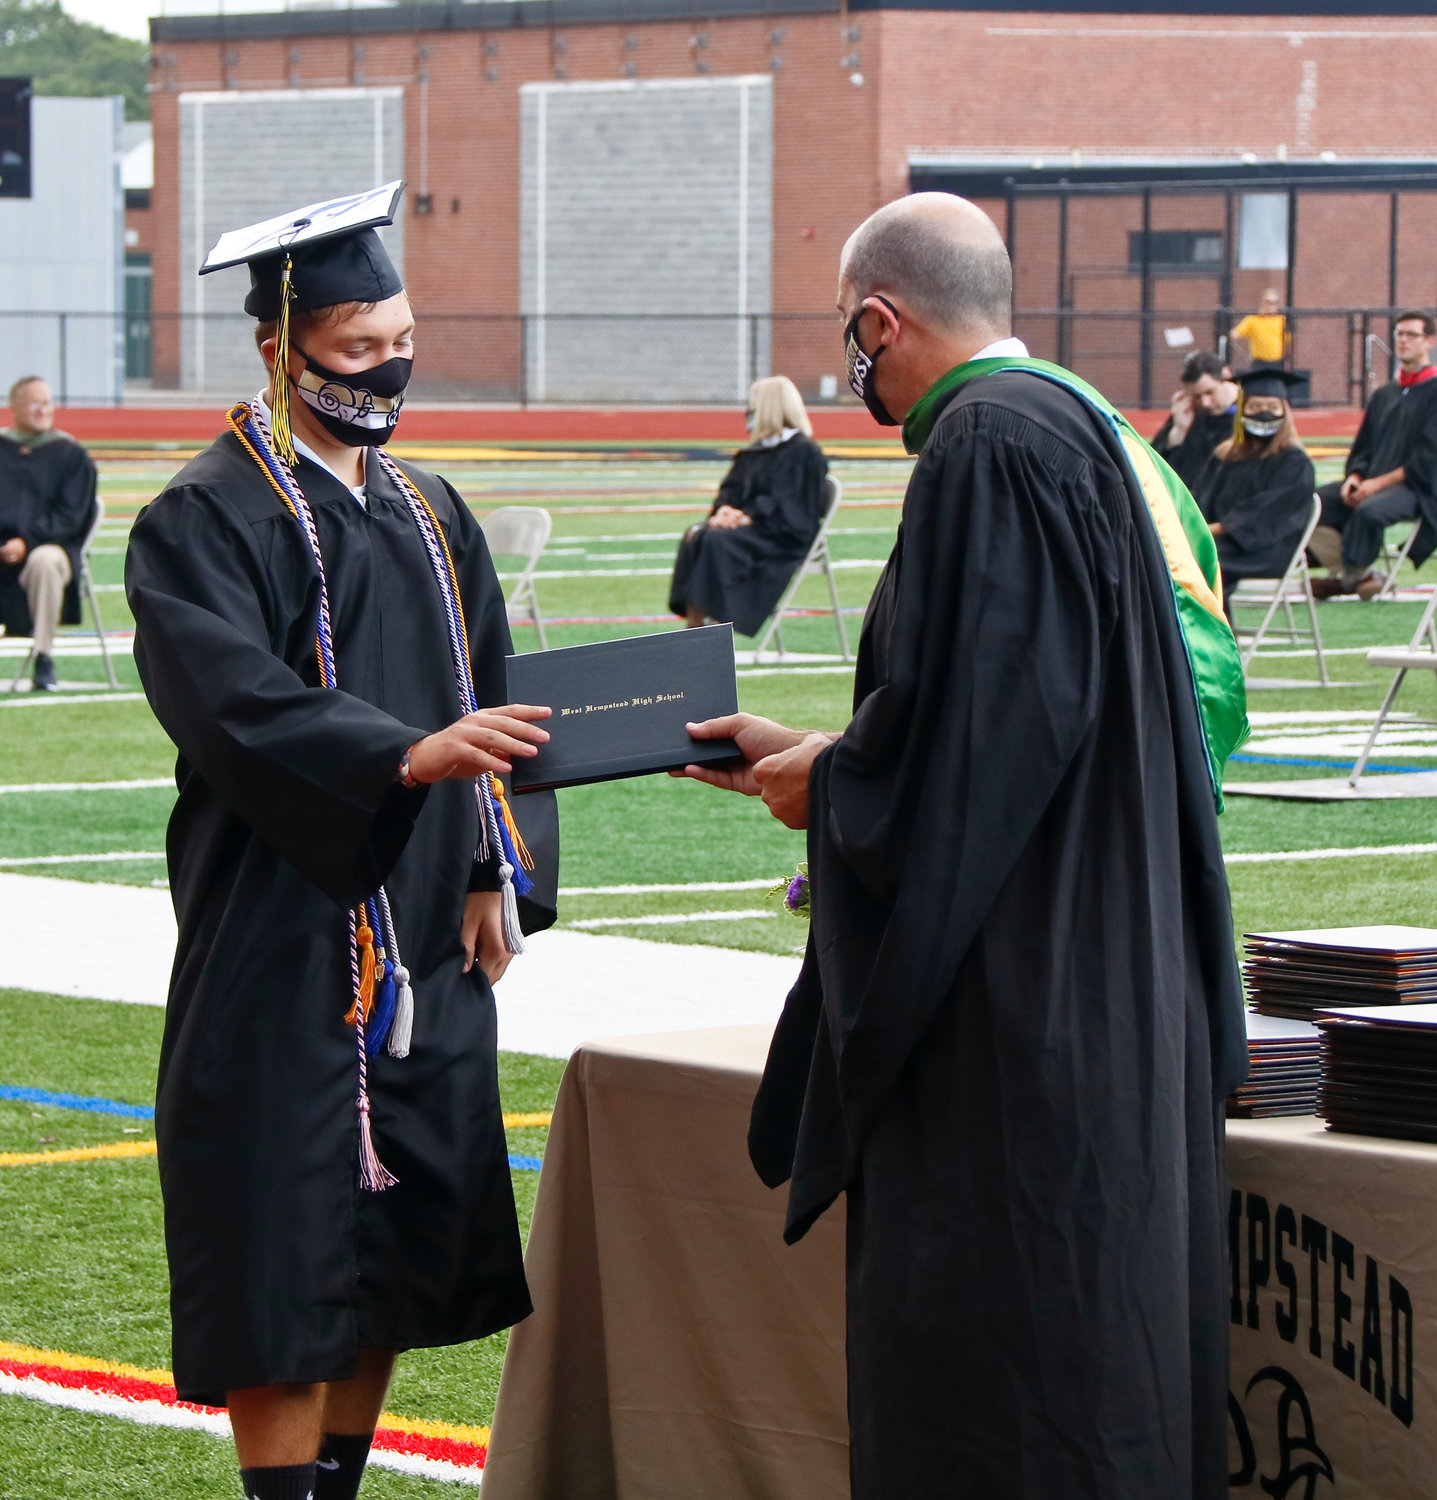 West Hempstead High School National Honor Society member Matthew Friedman, left, was presented with his diploma by Principal James DeTommaso during the school's 66th annual graduation ceremony.